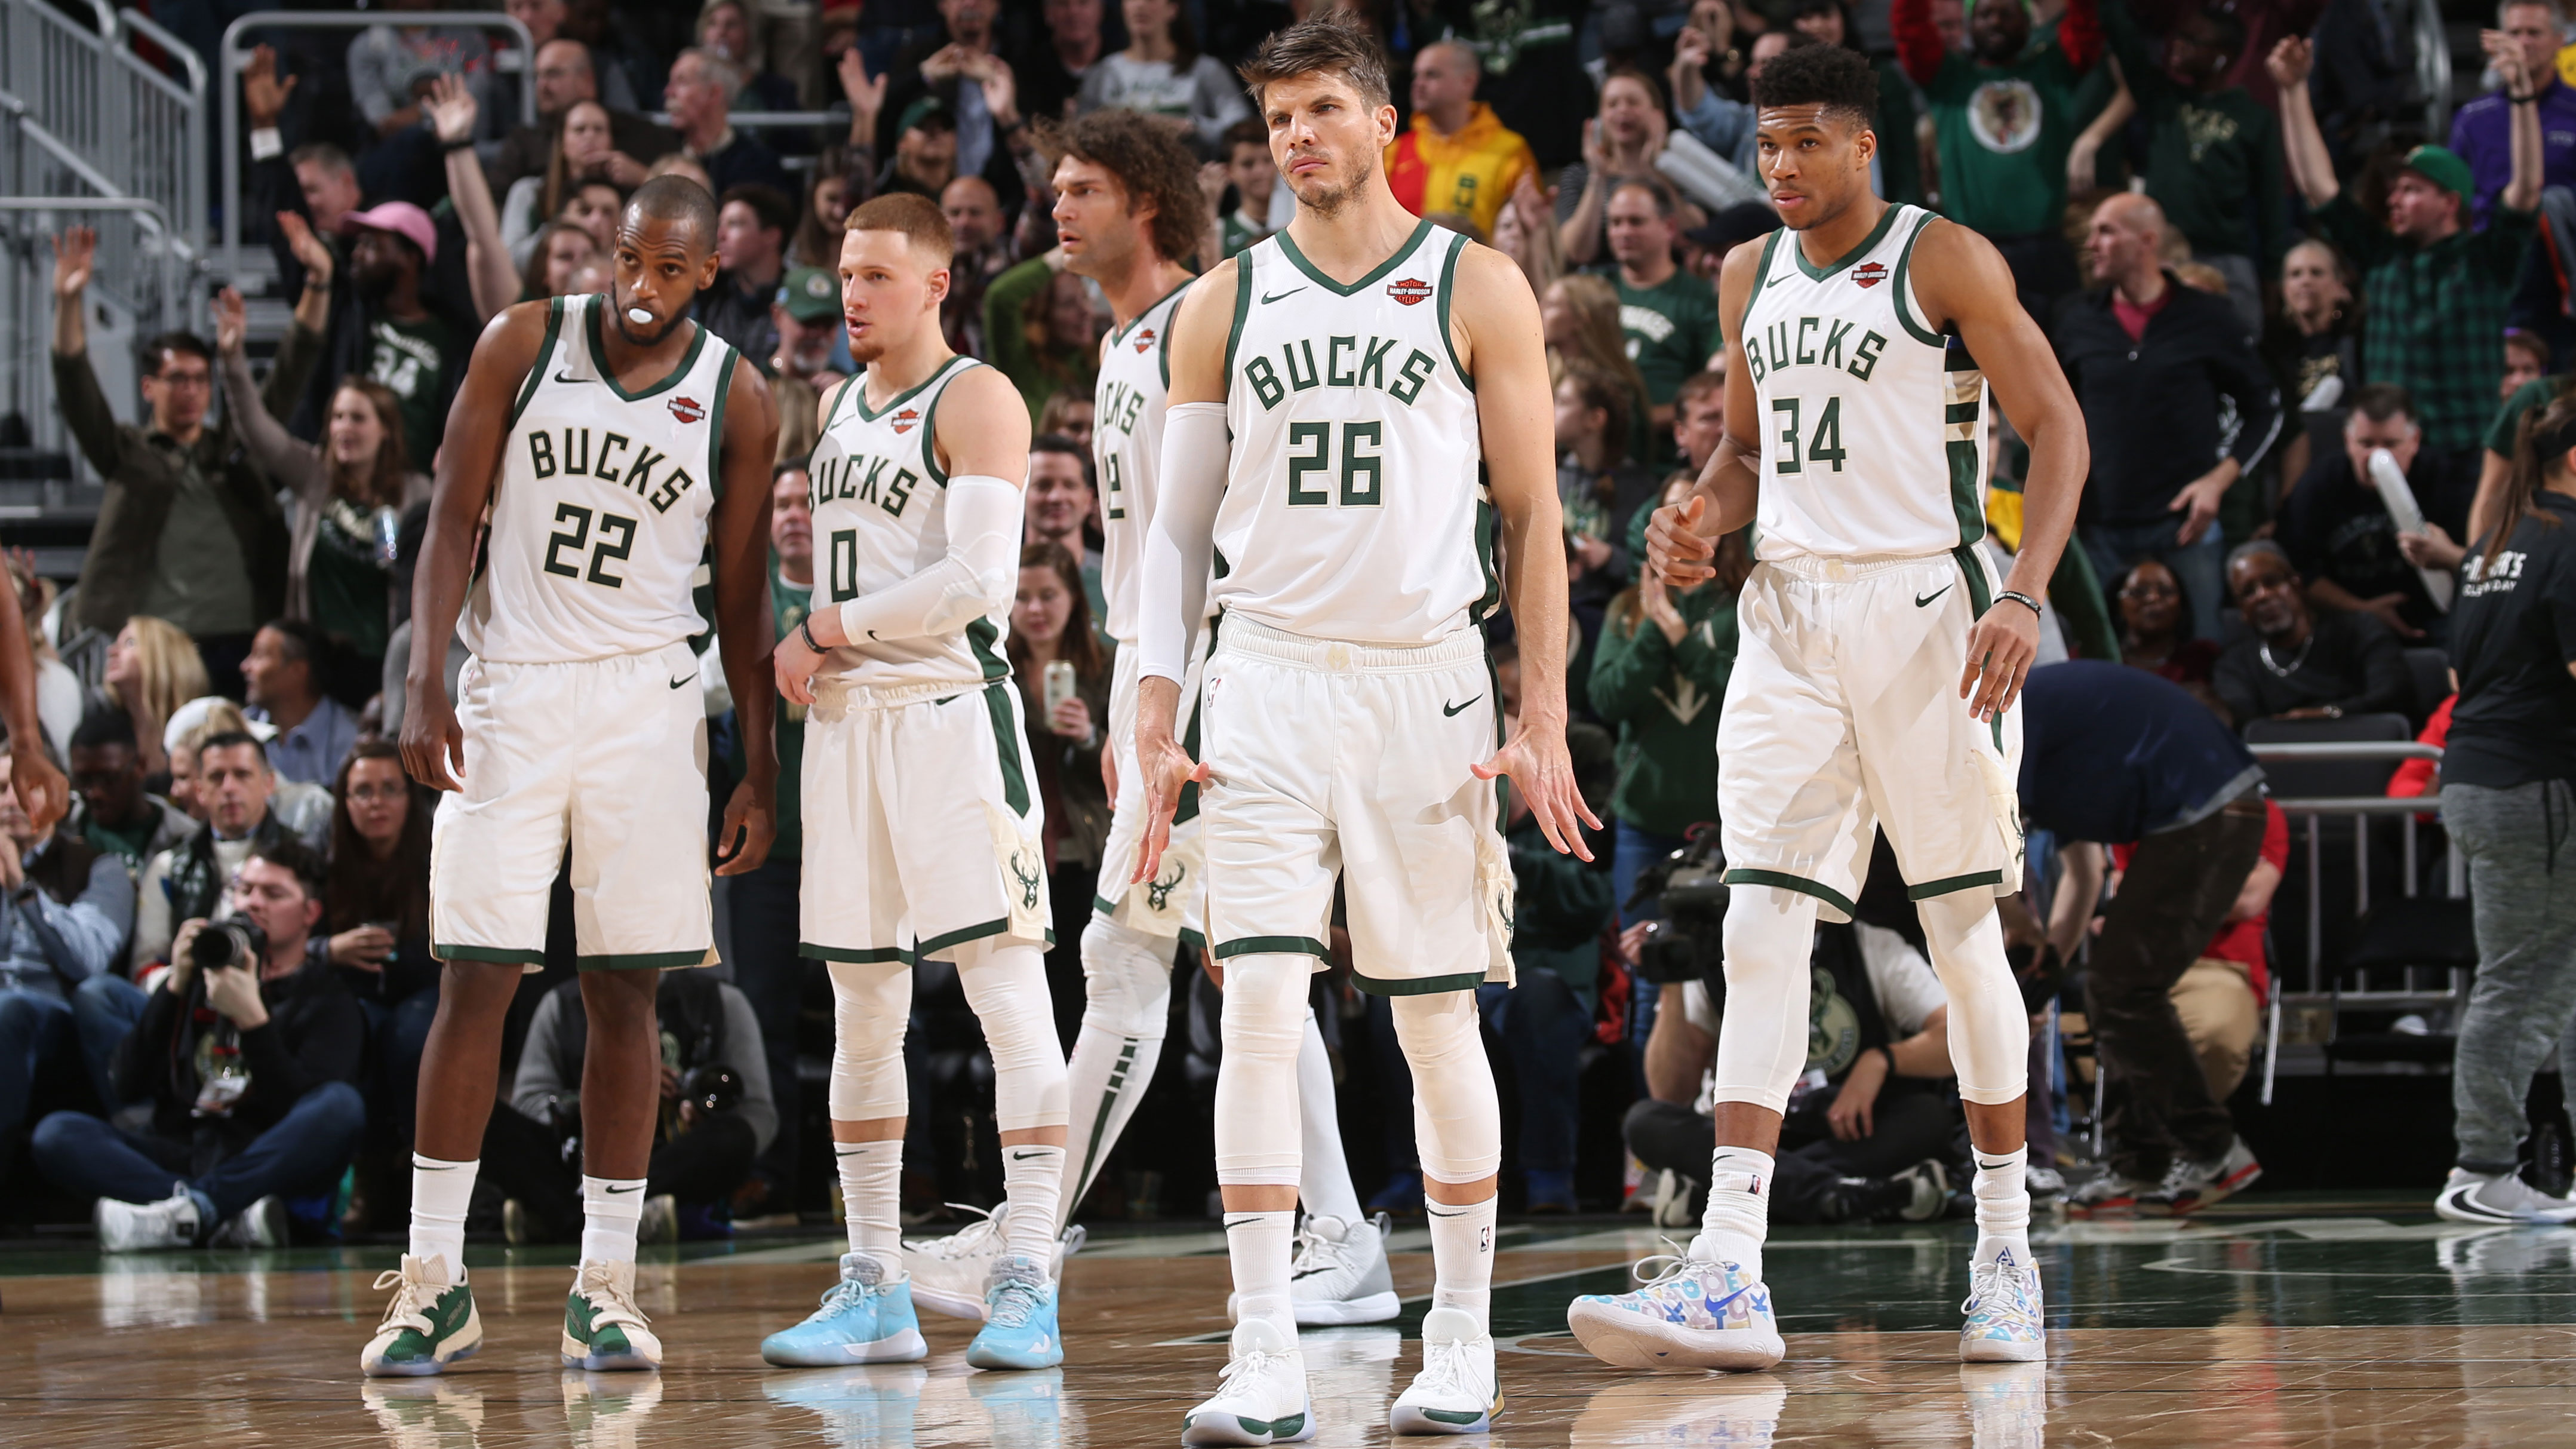 GAME RECAP: Bucks 117, Pacers 89